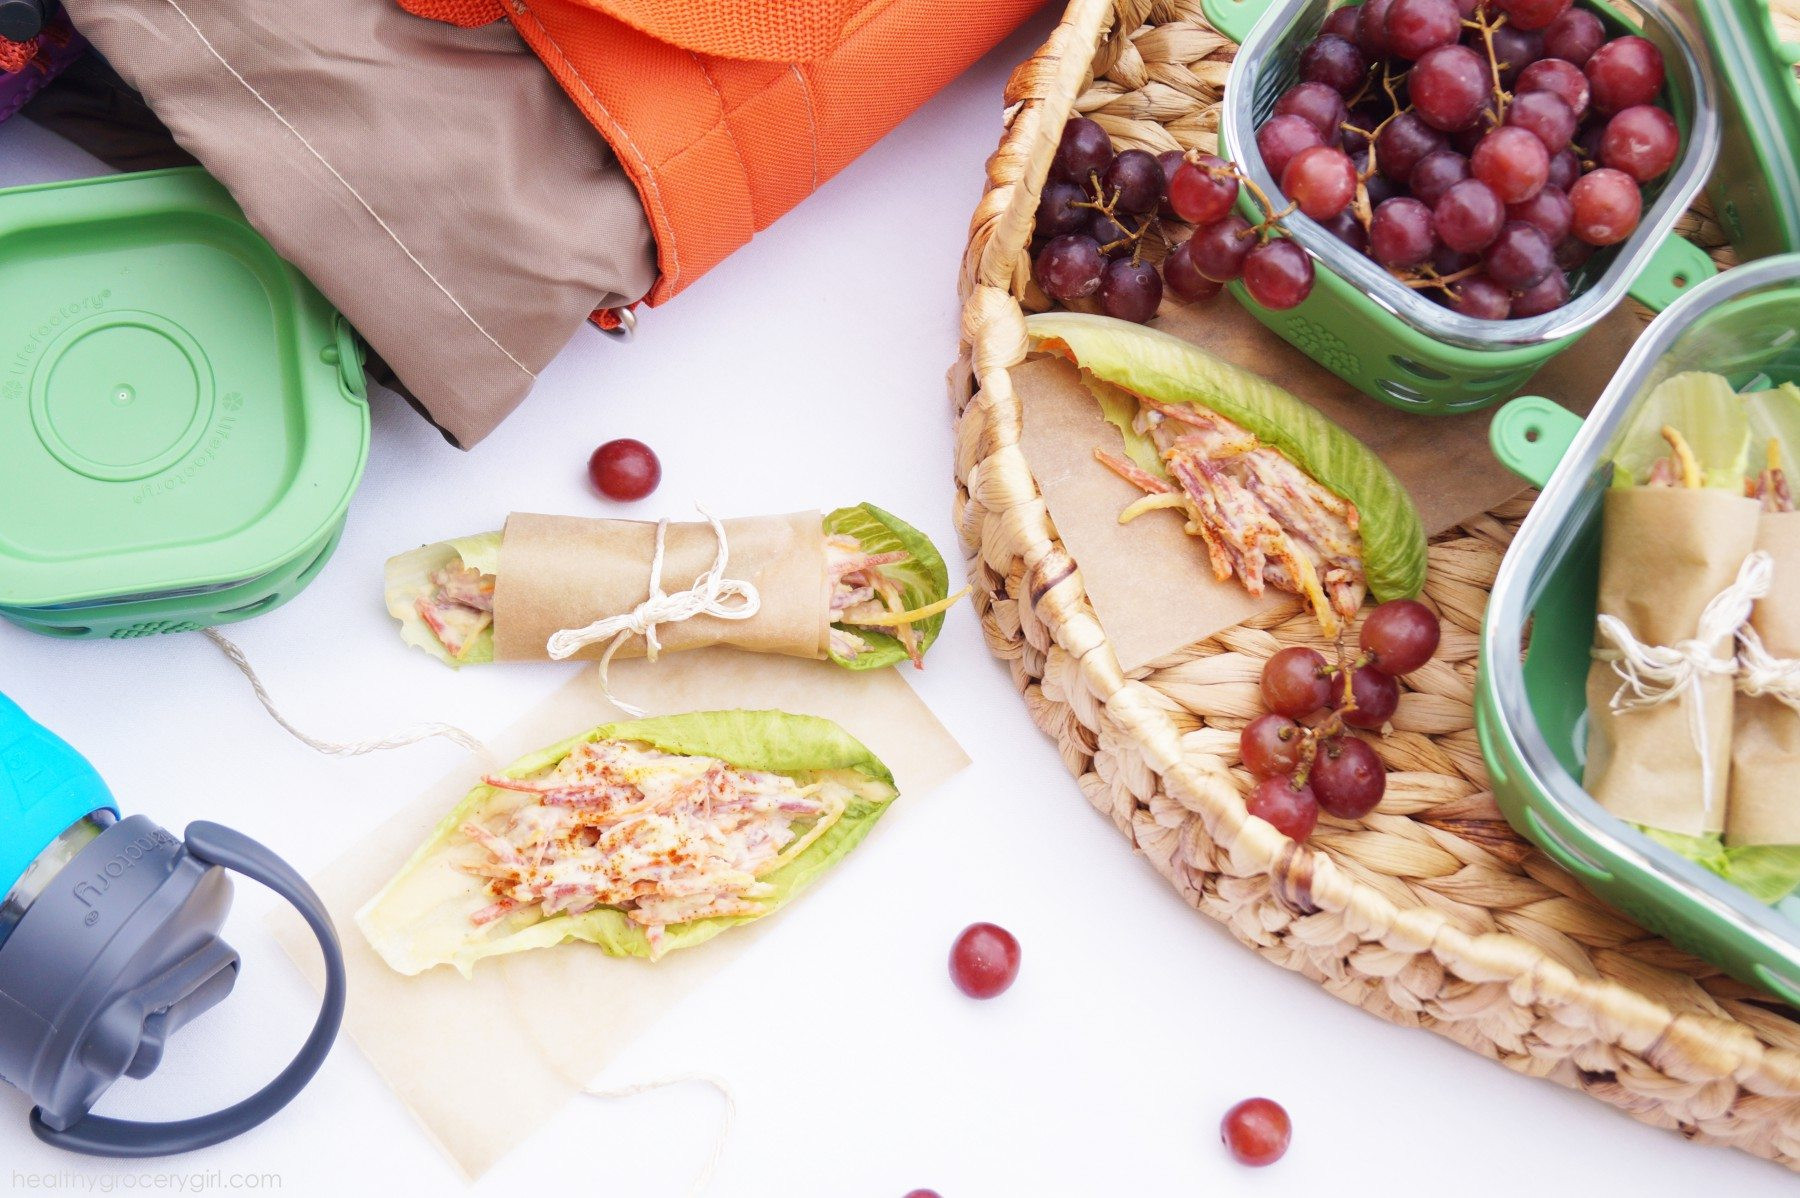 Picnic Desserts For Hot Weather  Healthy Grocery Girl